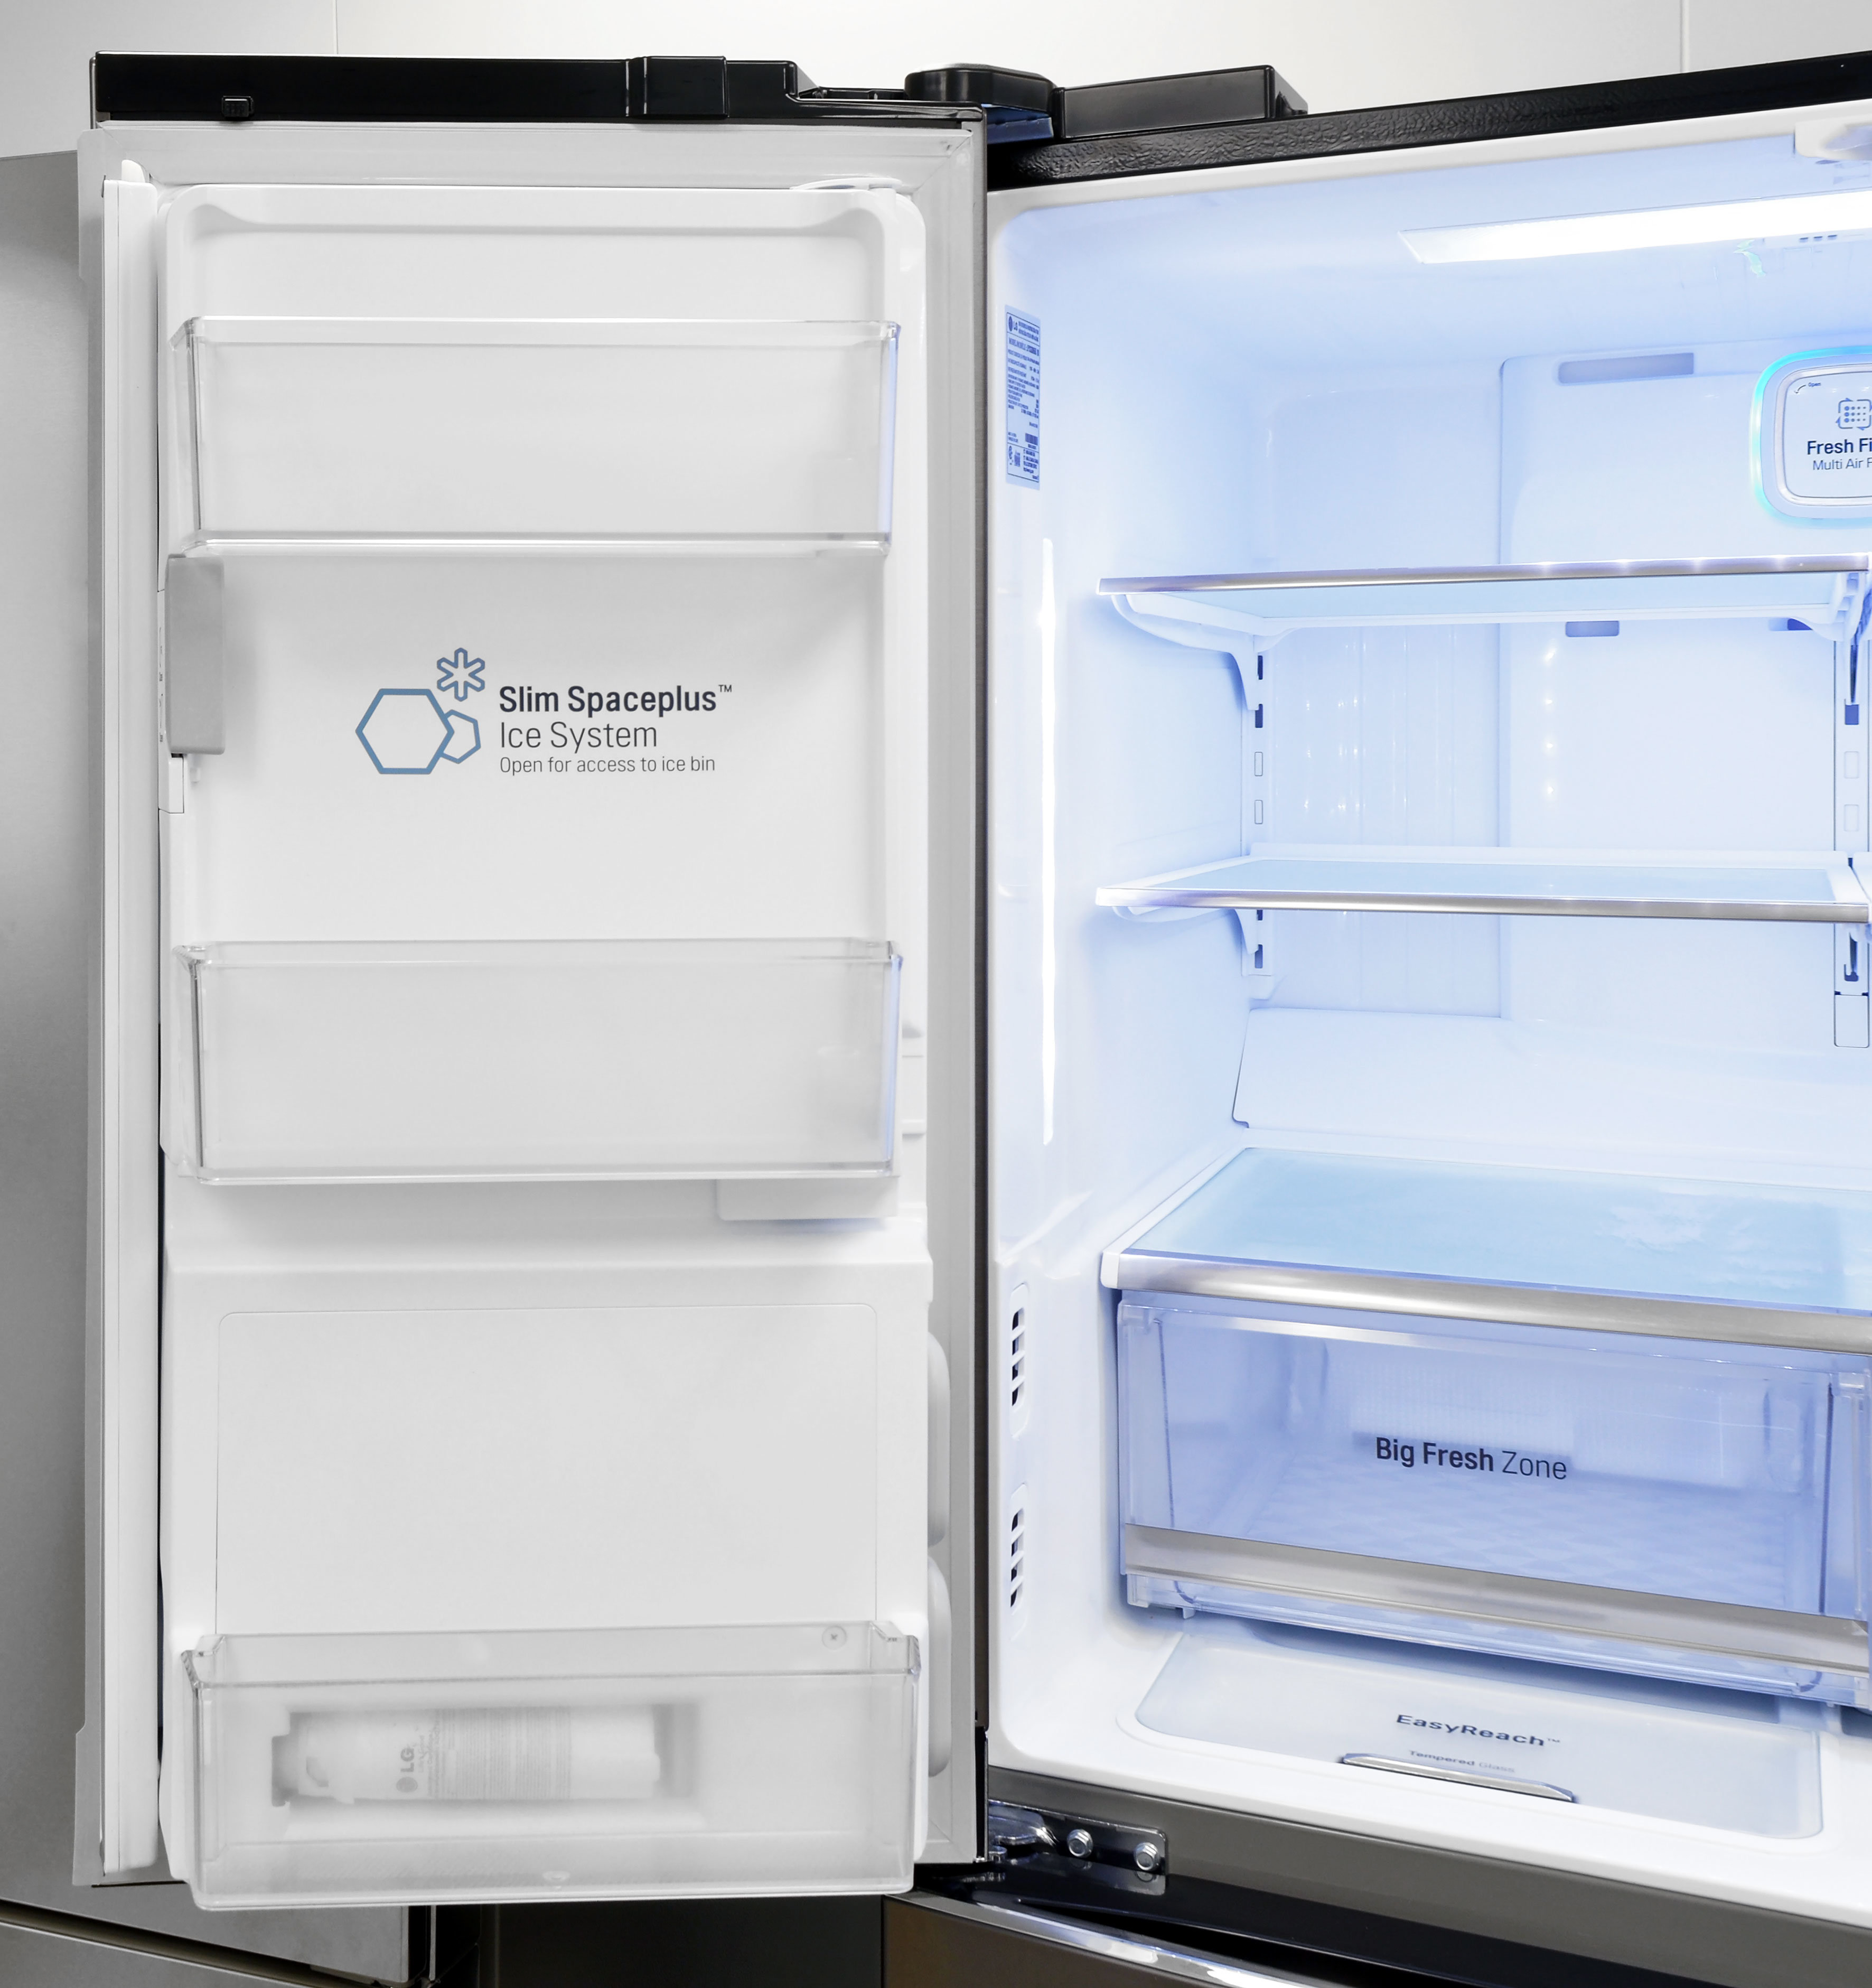 Door storage on the left side of the LG LPXS30866D's fridge is shallow, but still useful.